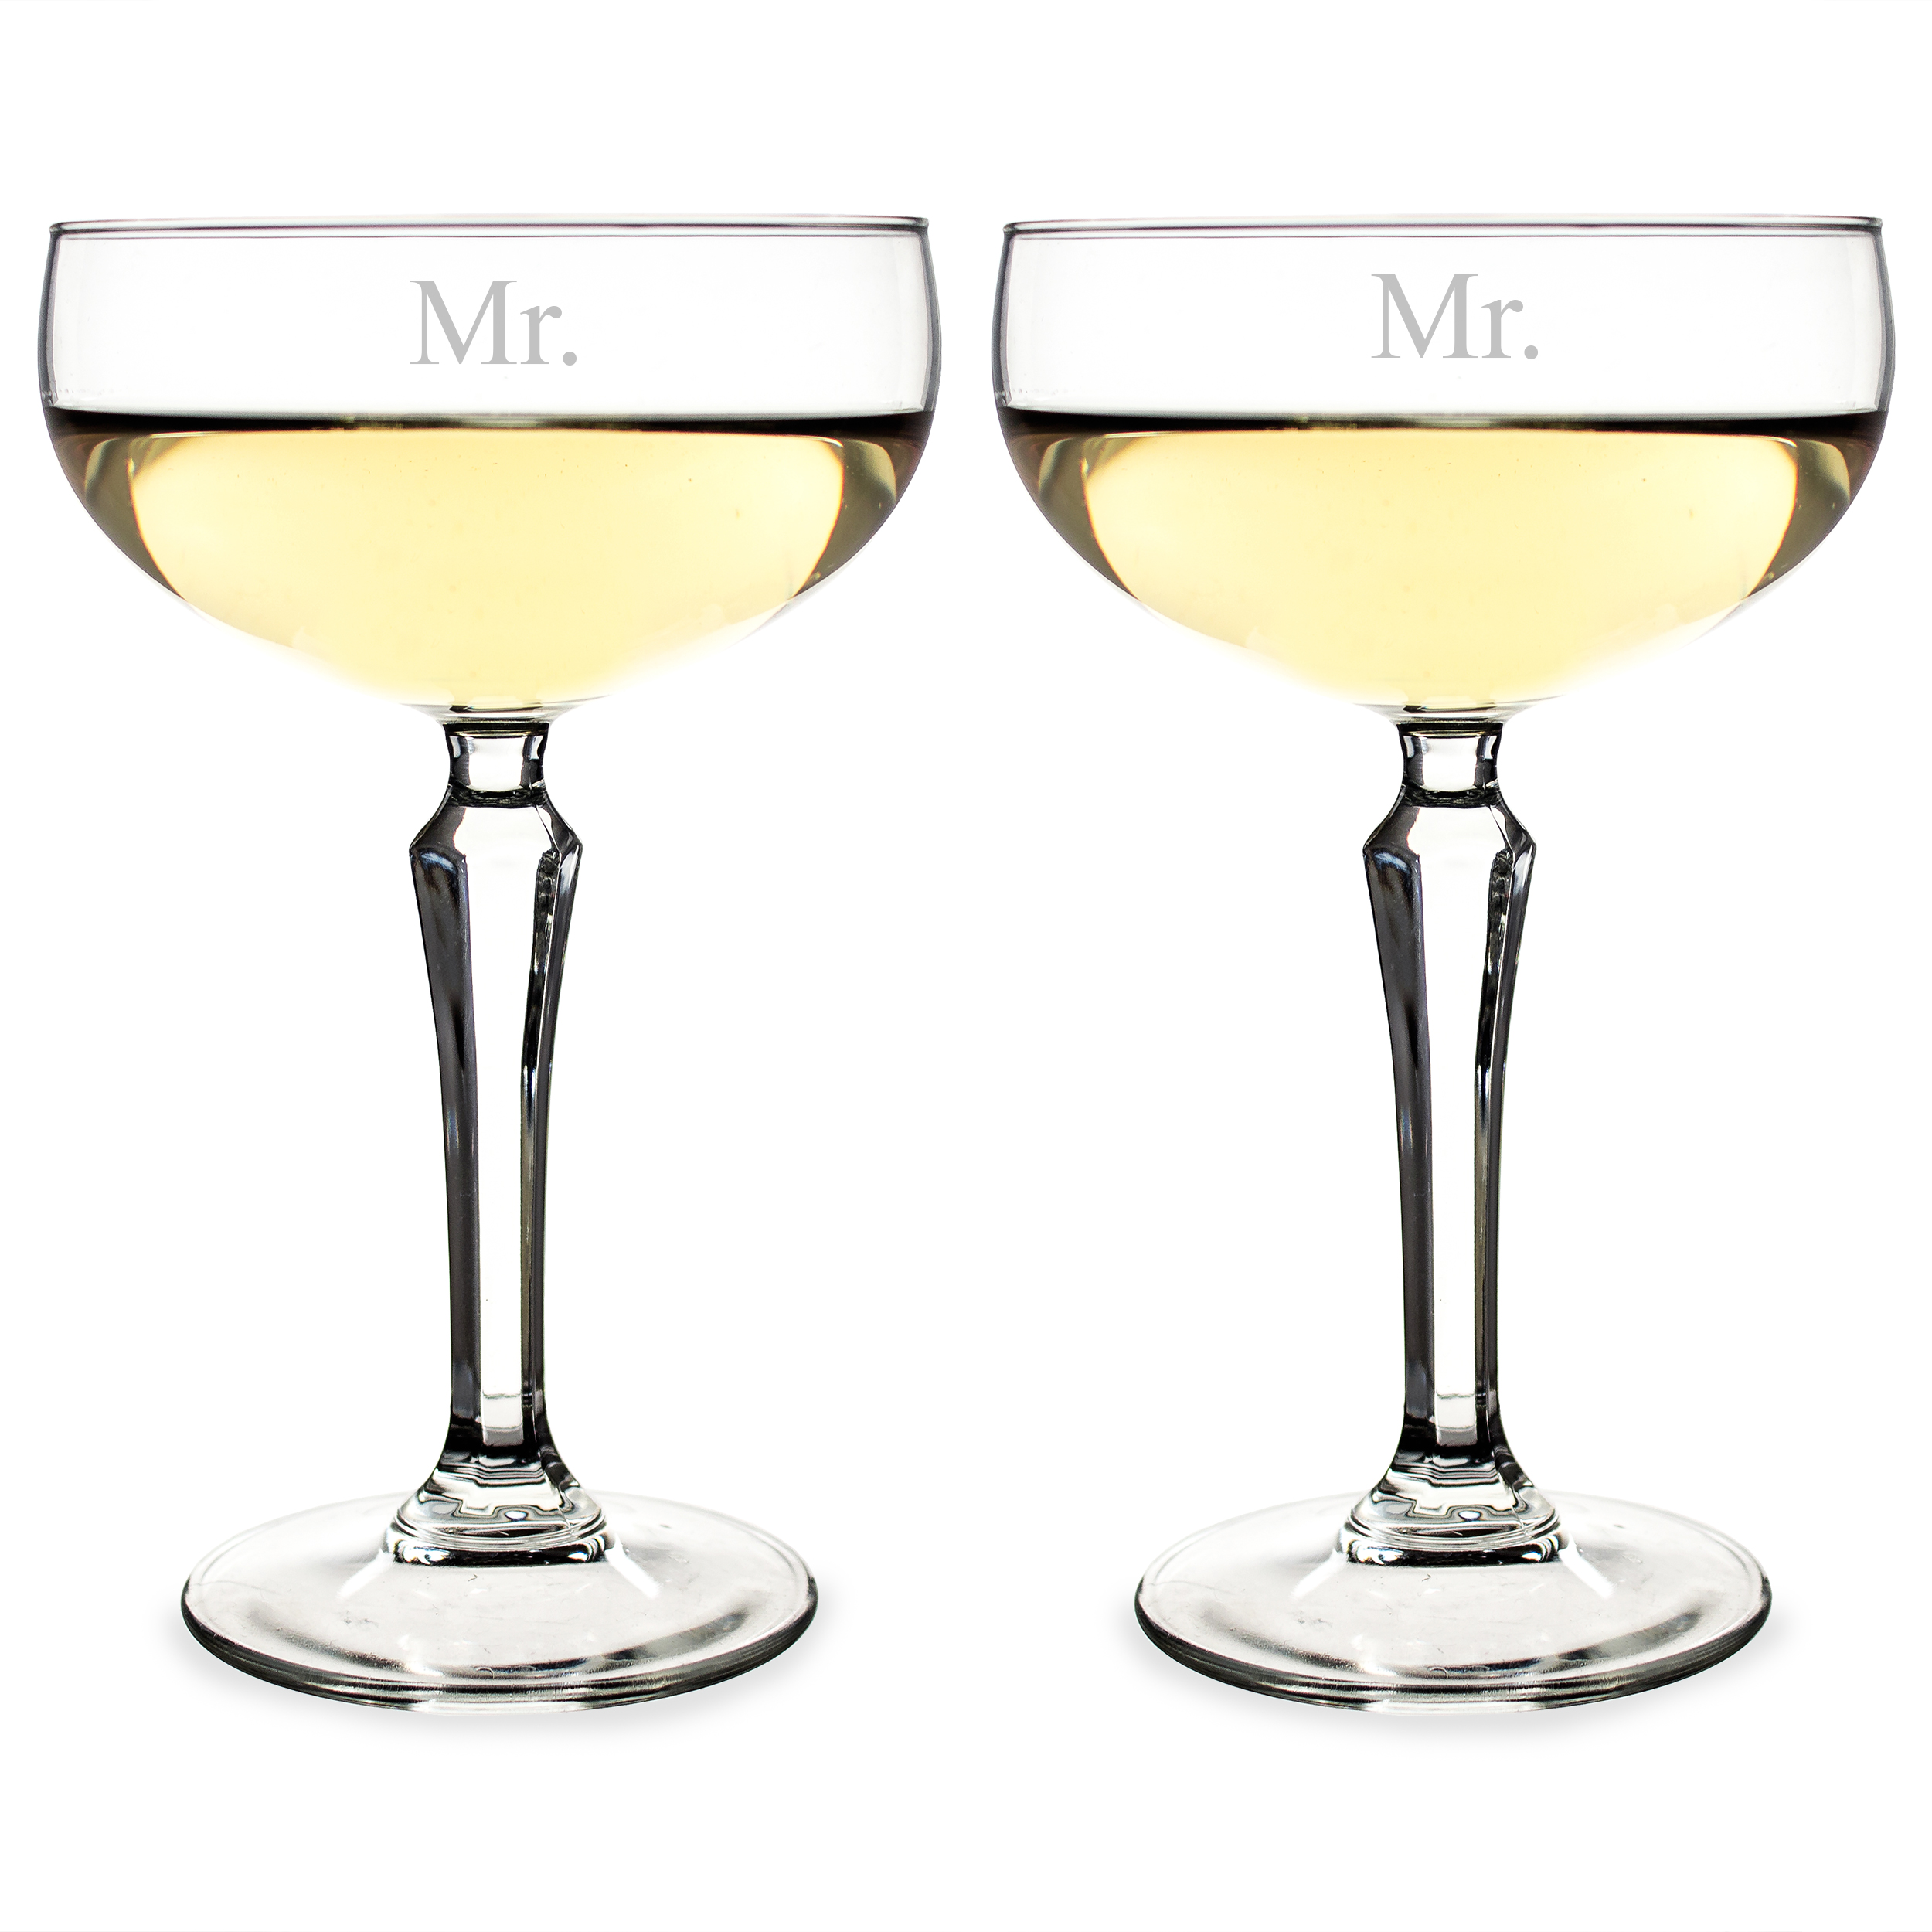 Cathys Concepts MR1230-2 8.25 oz Mr. & Mr. Champagne Coupe Flutes - 6 x 3.375 in.